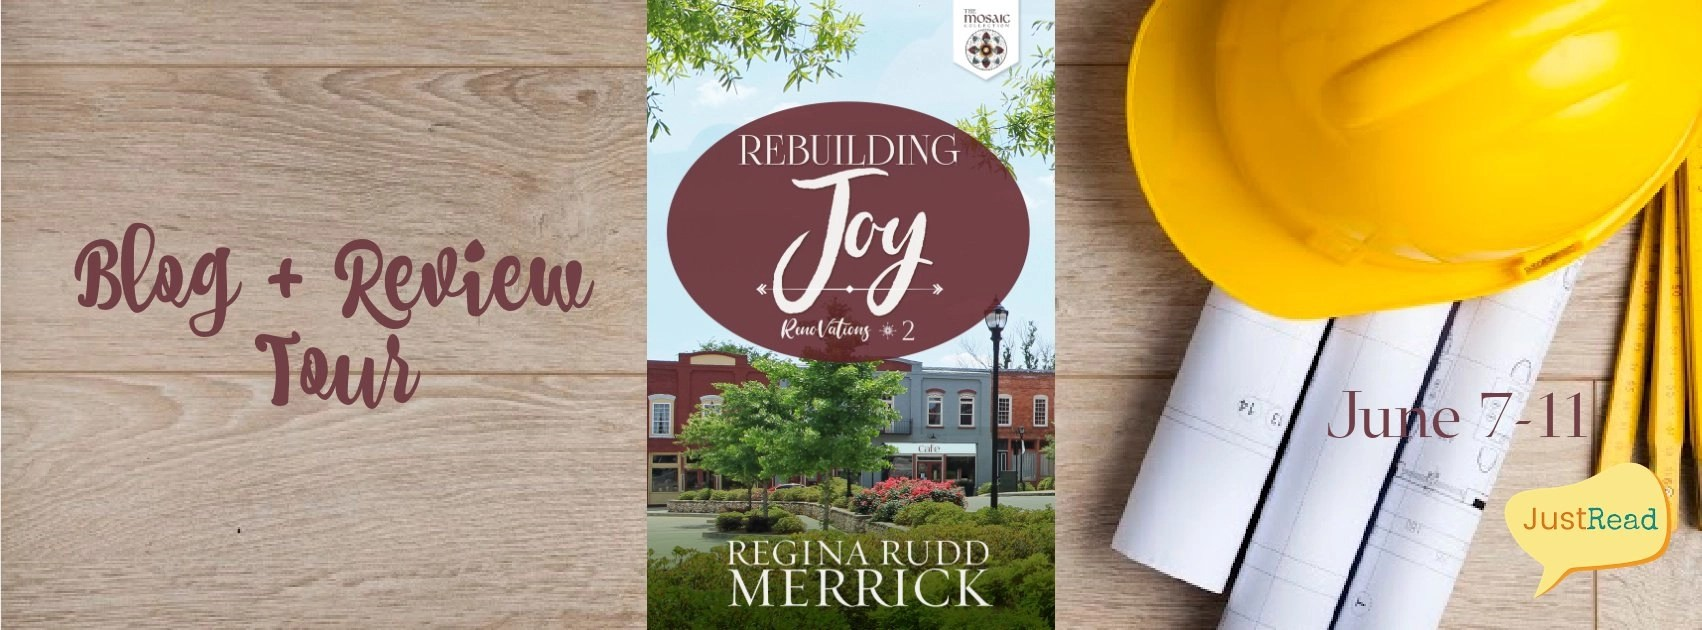 Welcome to the Rebuilding Joy Blog + Review Tour & Giveaway!